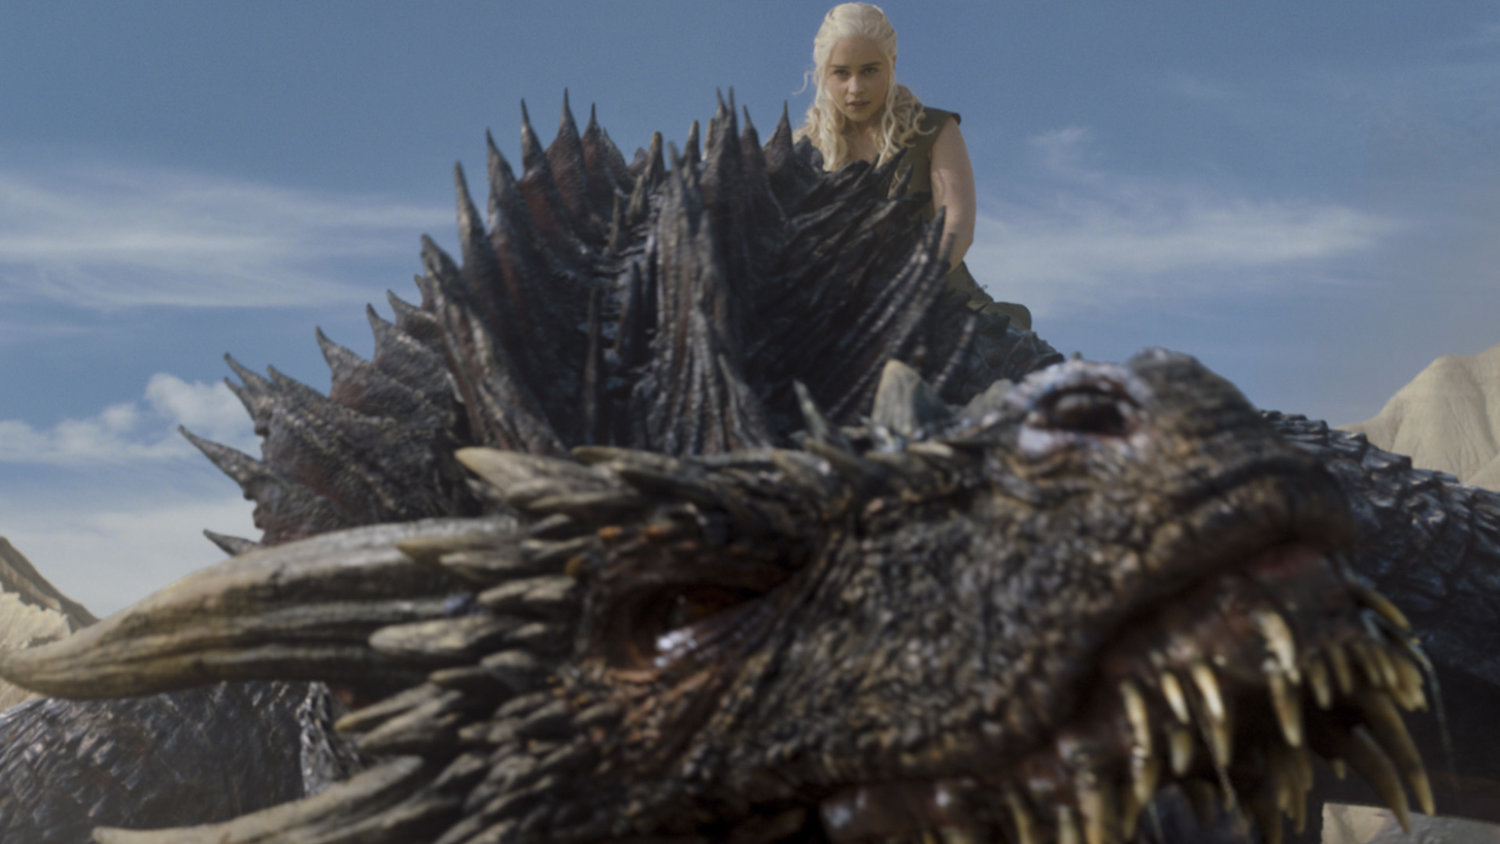 GAME OF THRONES Season 7: Dany's Dragons Will Be the Size of 747s